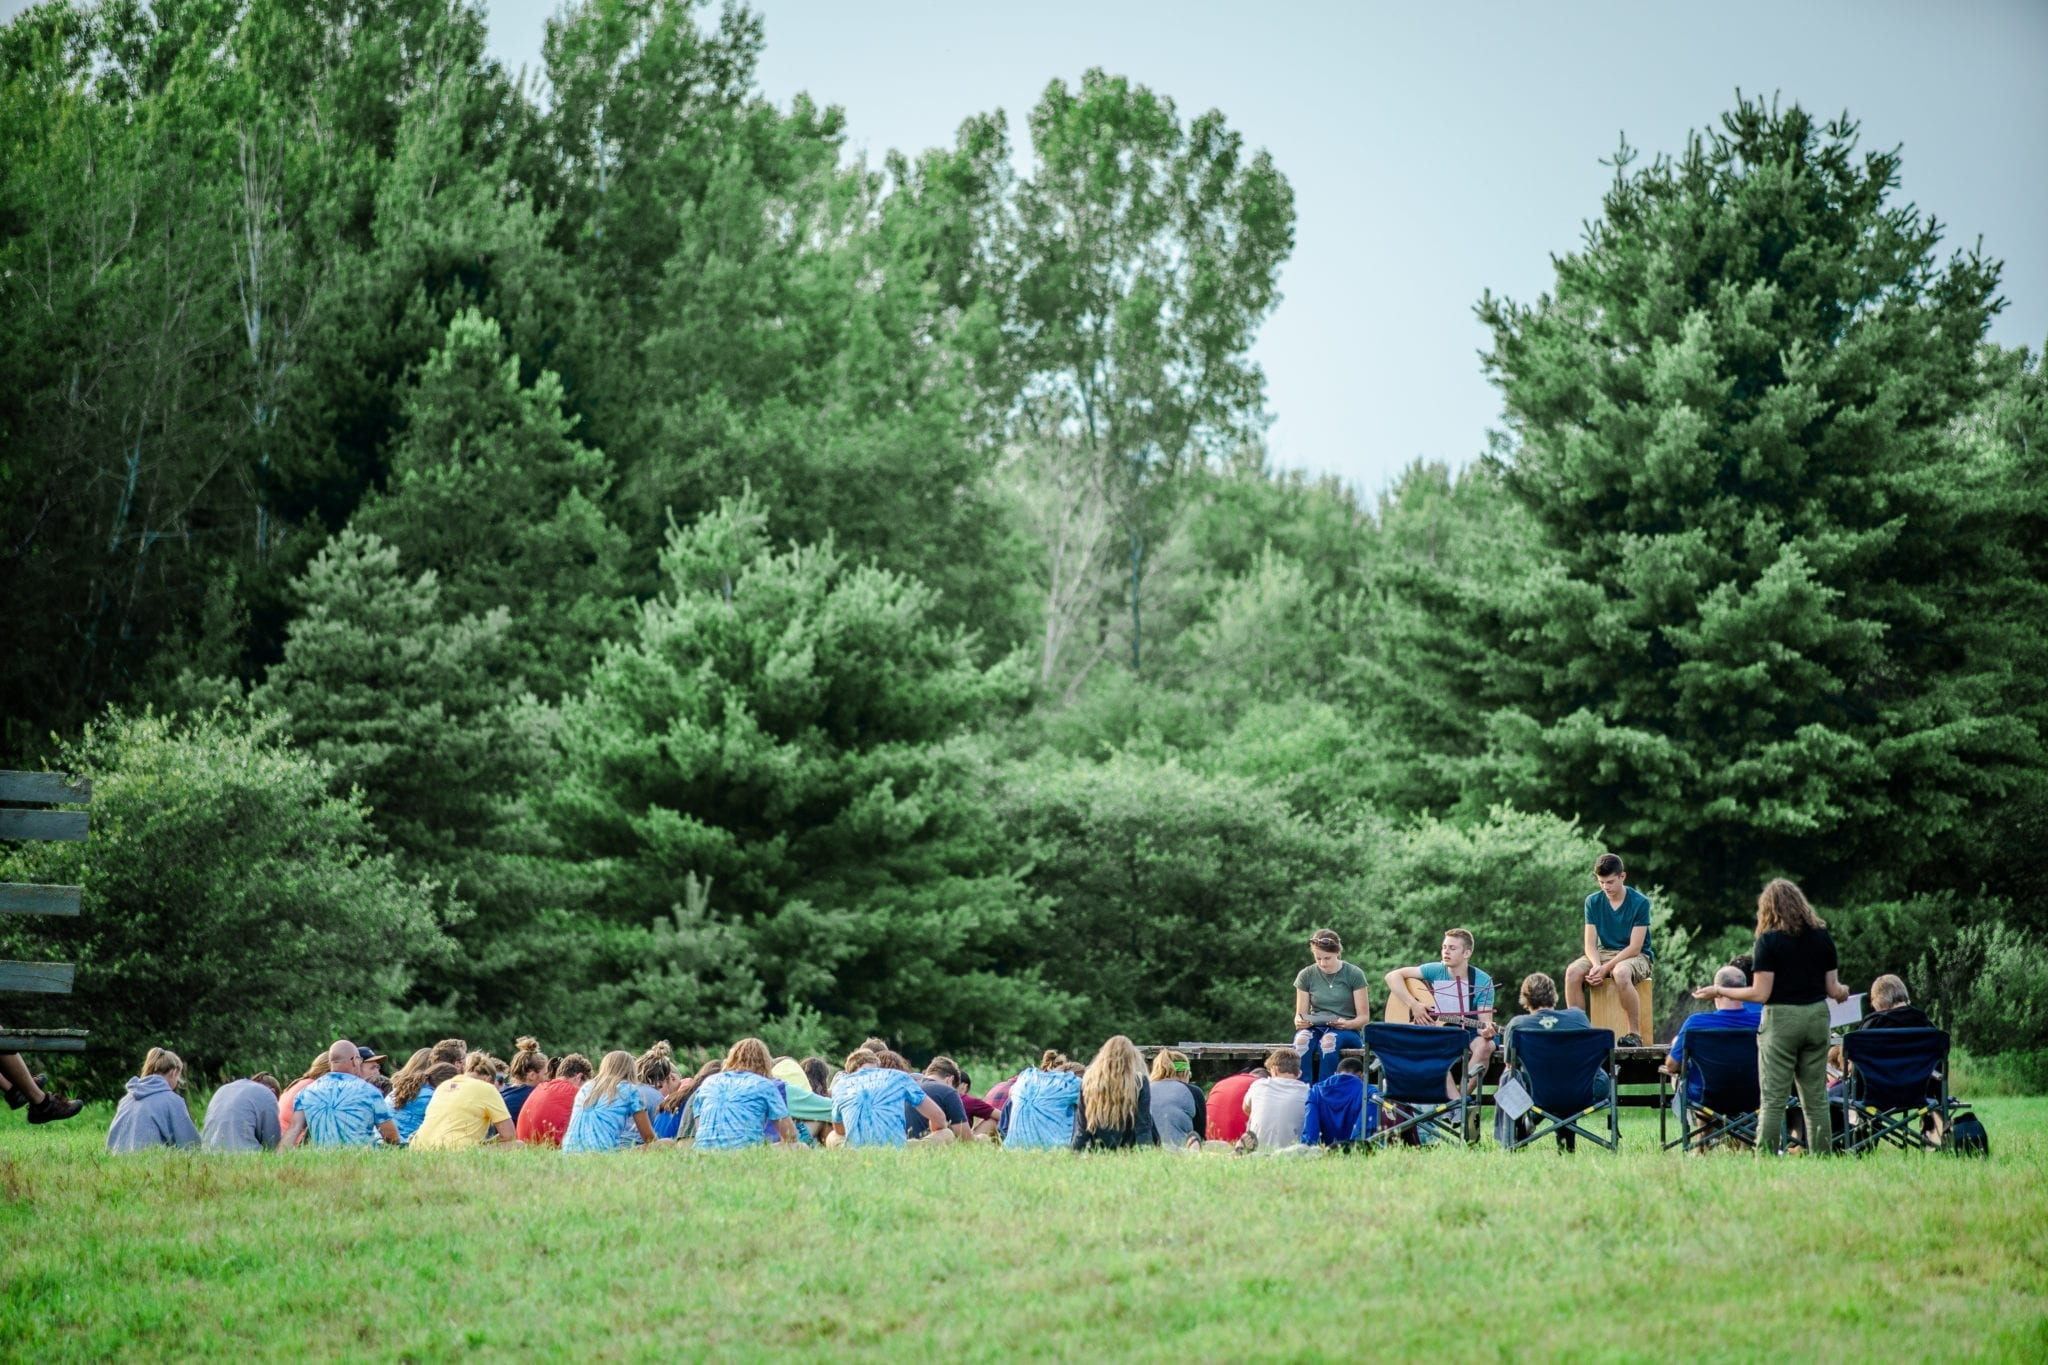 mission-trip-for-teens-in-Wyoming-Michigan-USA-07.jpg